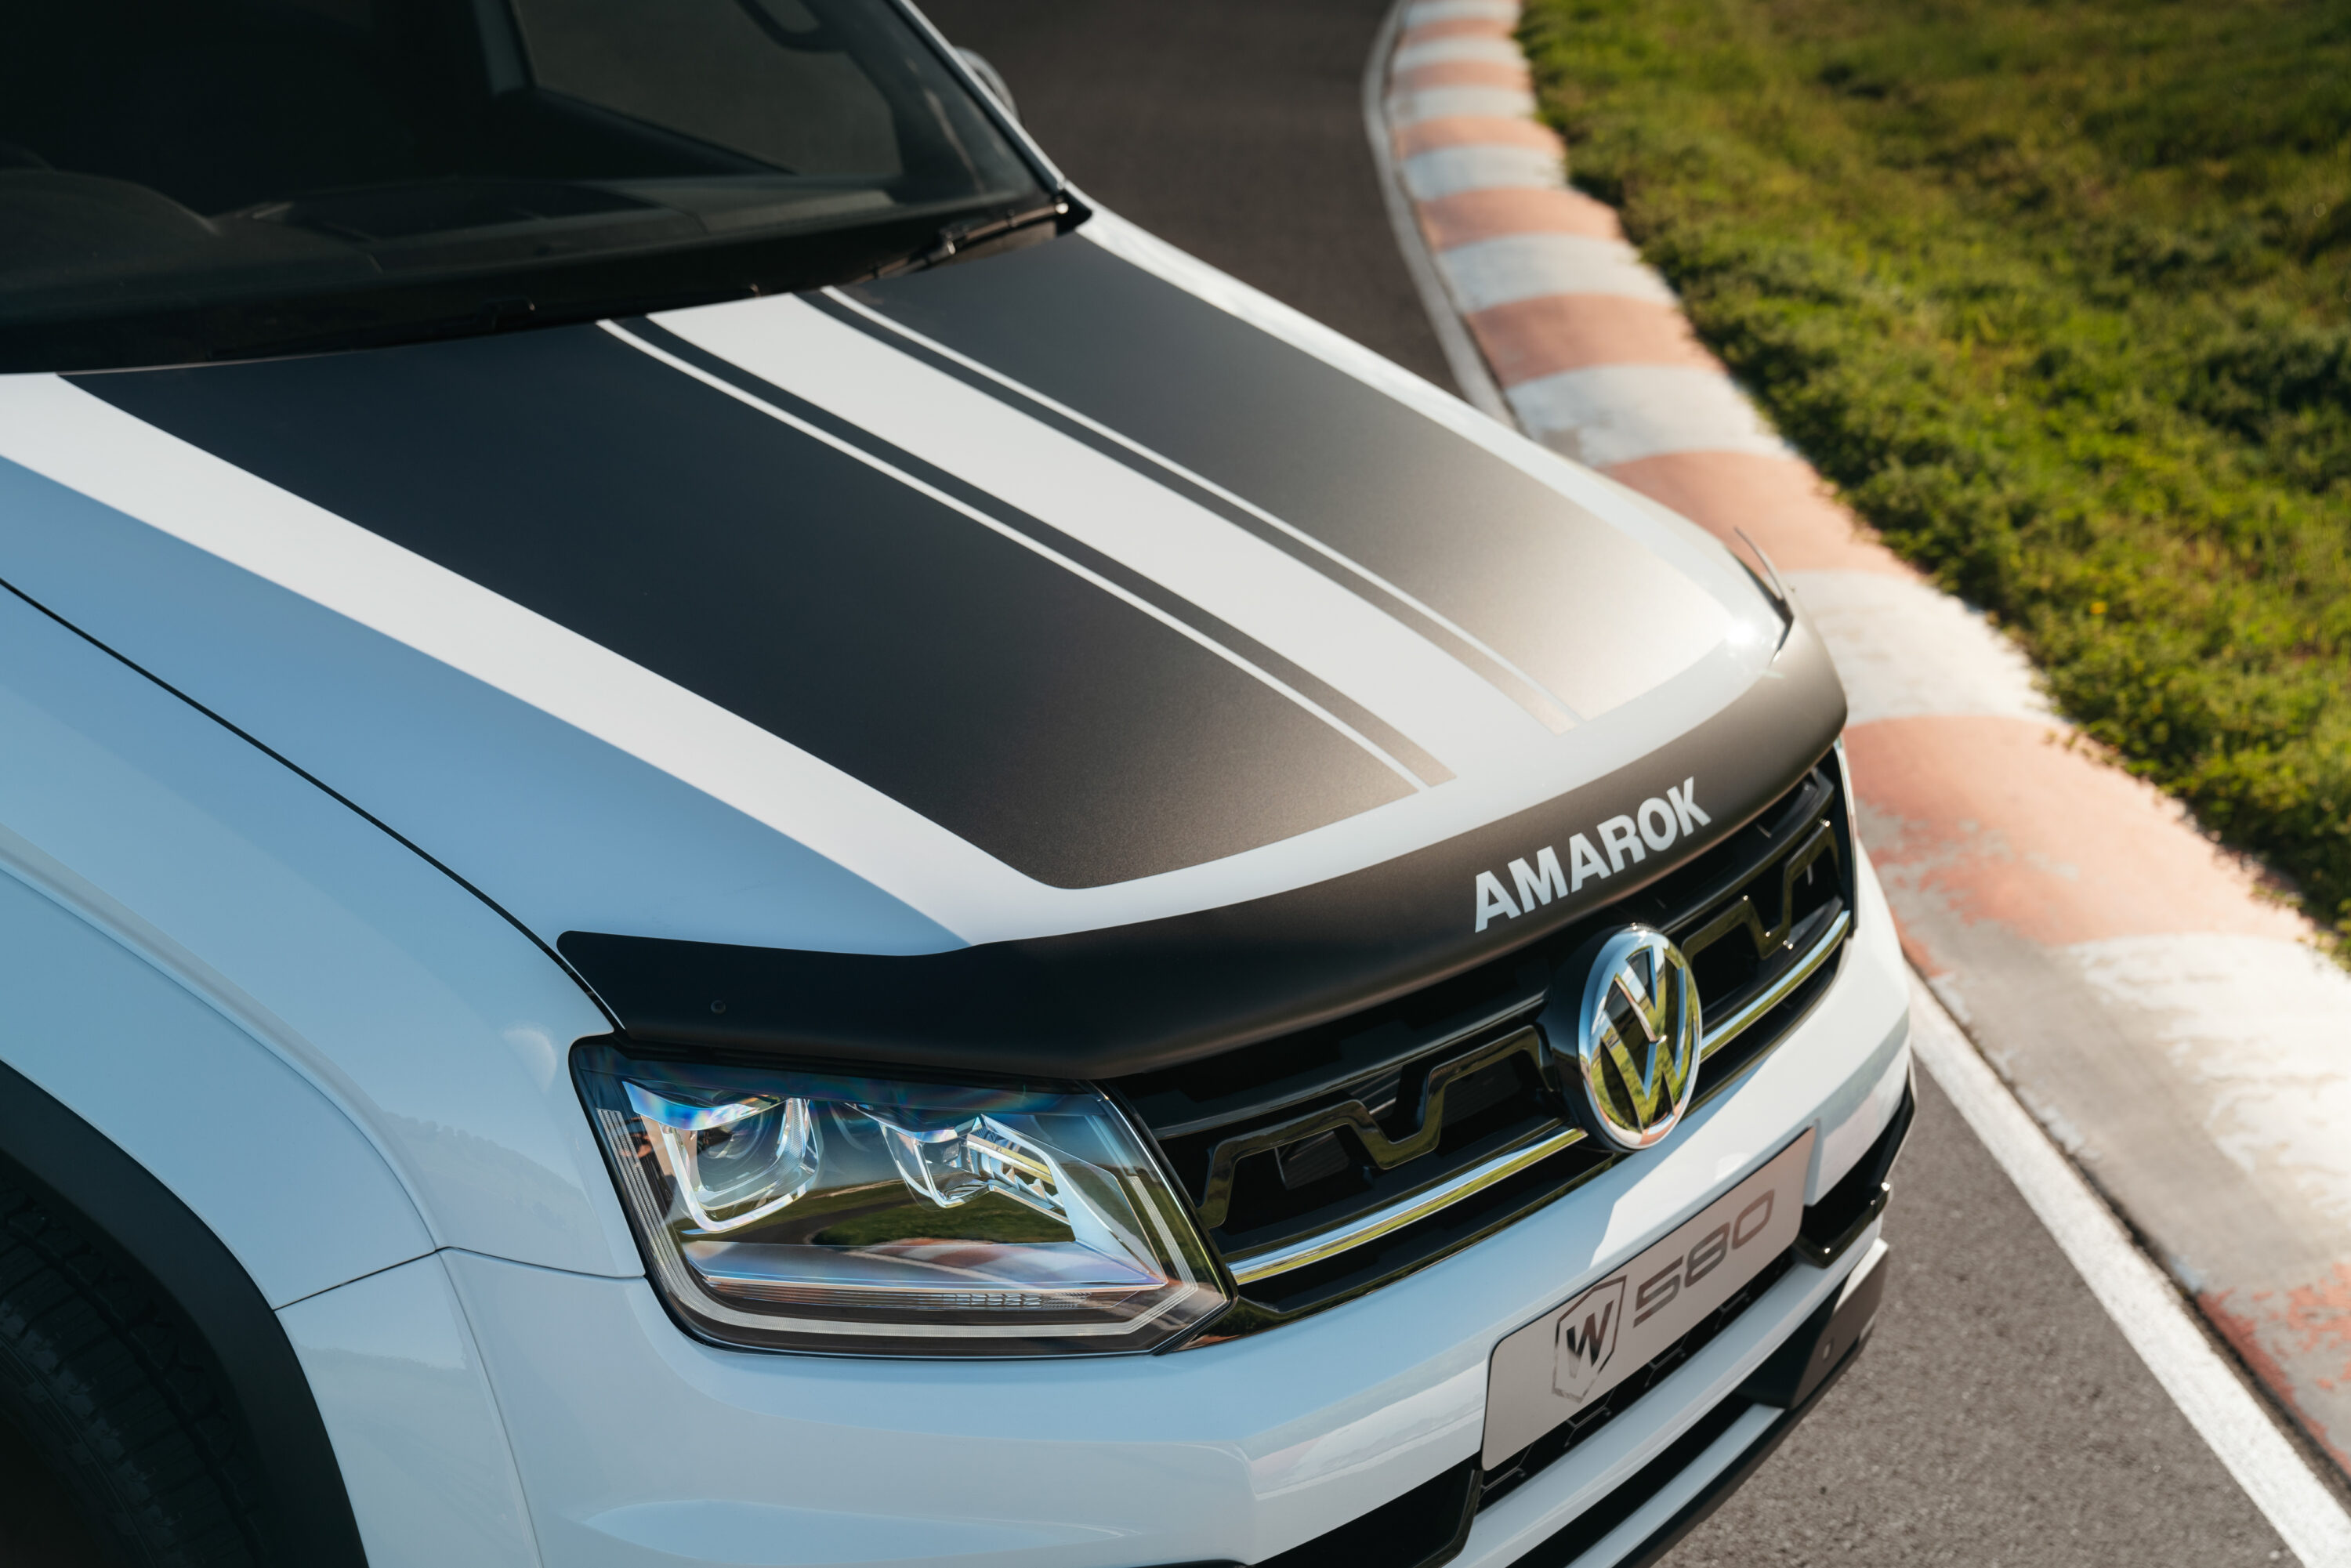 Amarok W580 pre-production prototype.